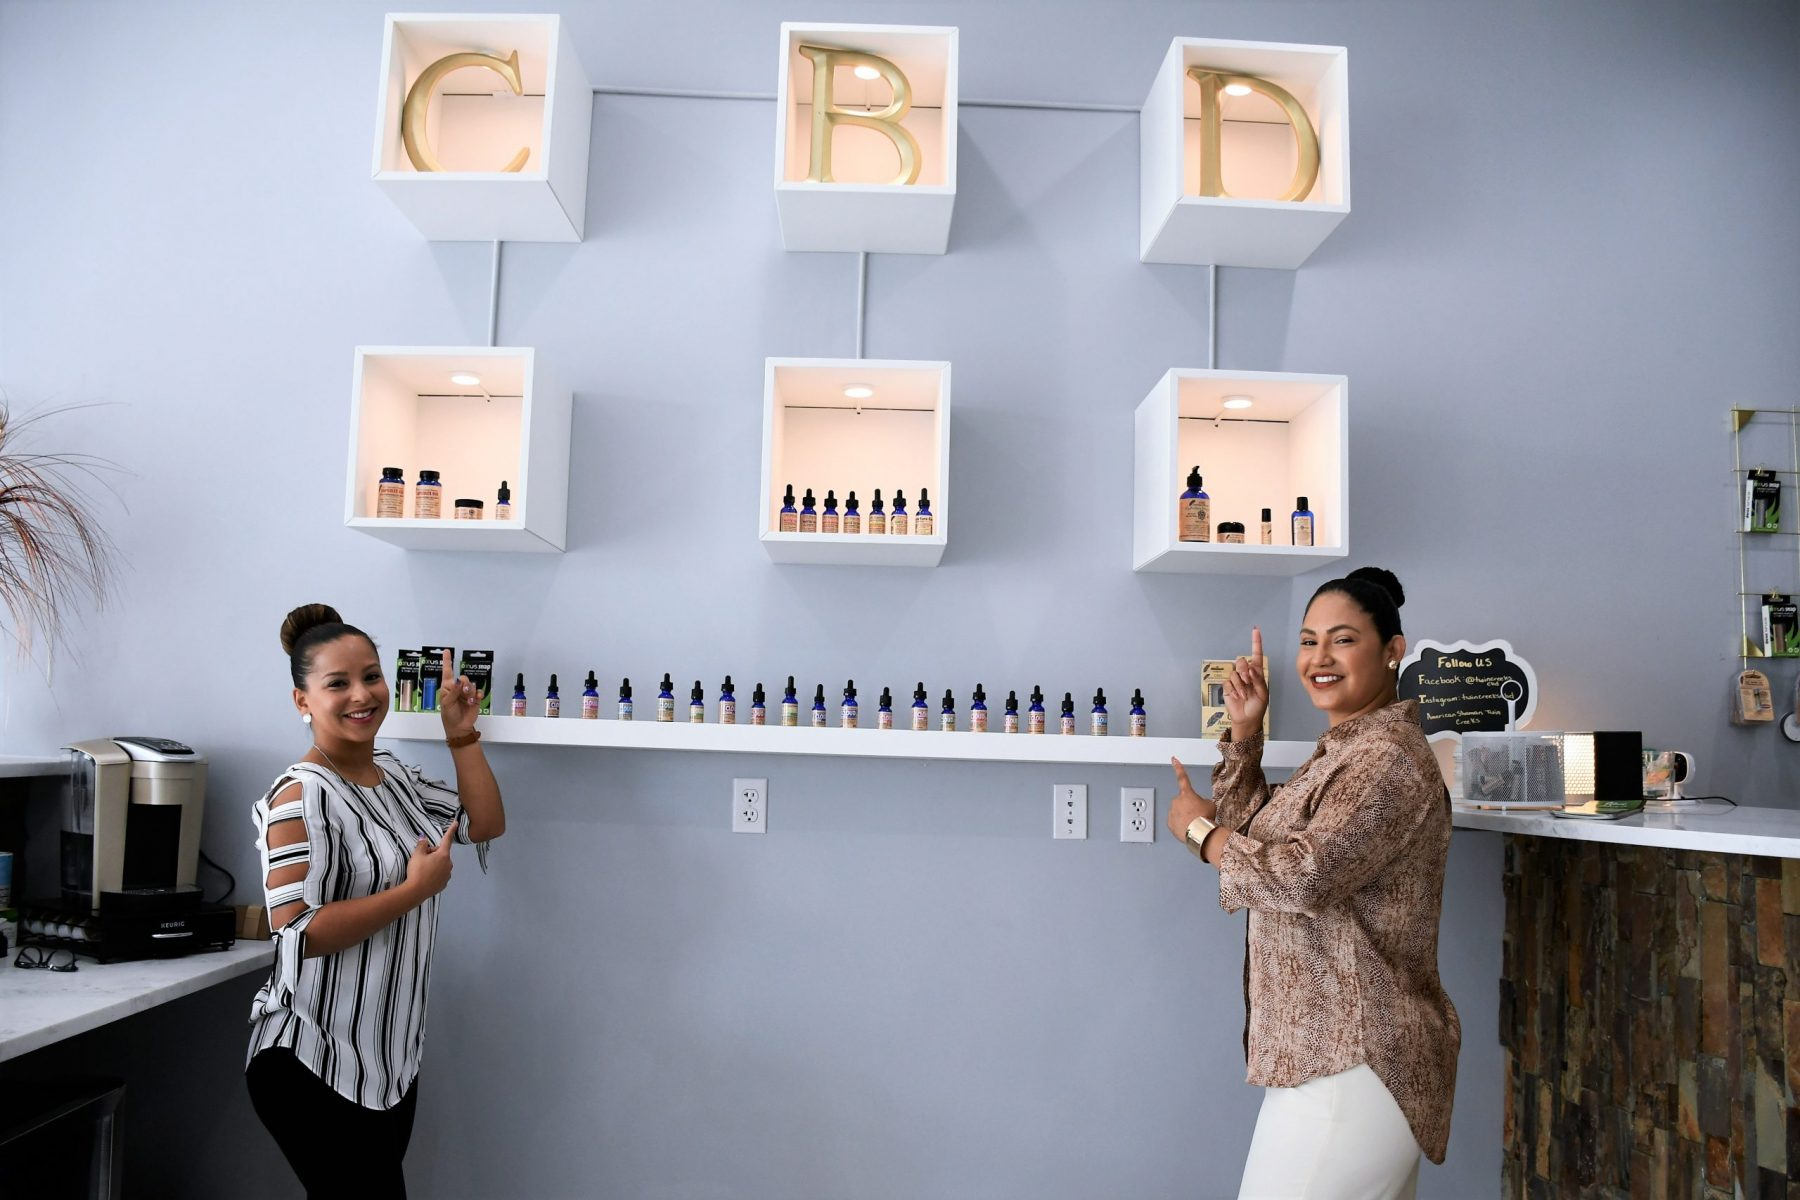 Two women are pointing to the selection of CBD oils available.